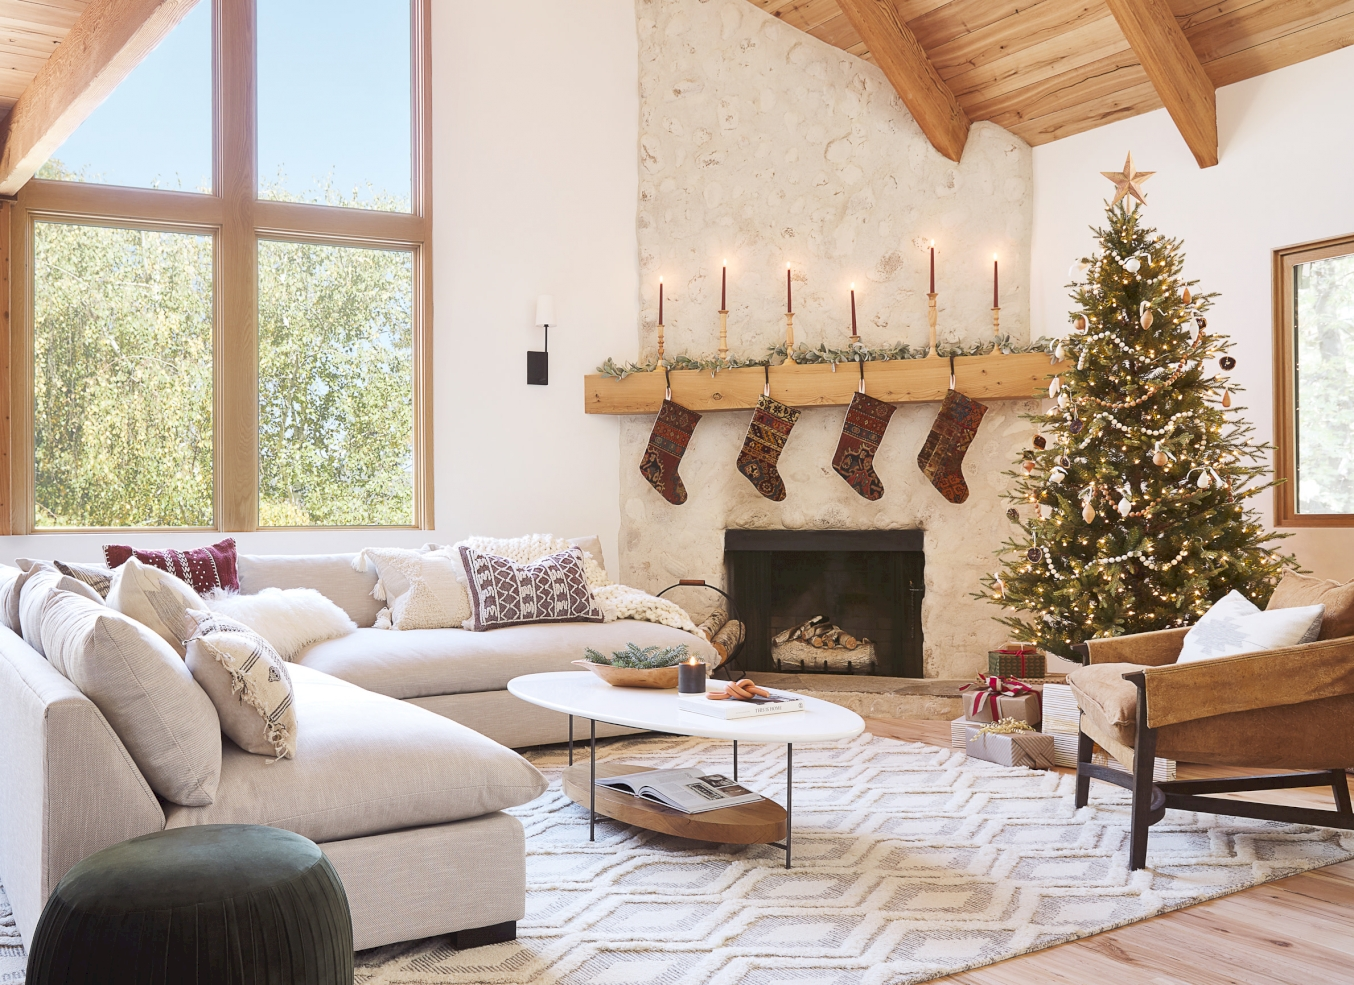 Holiday Checklist: Deck the Halls